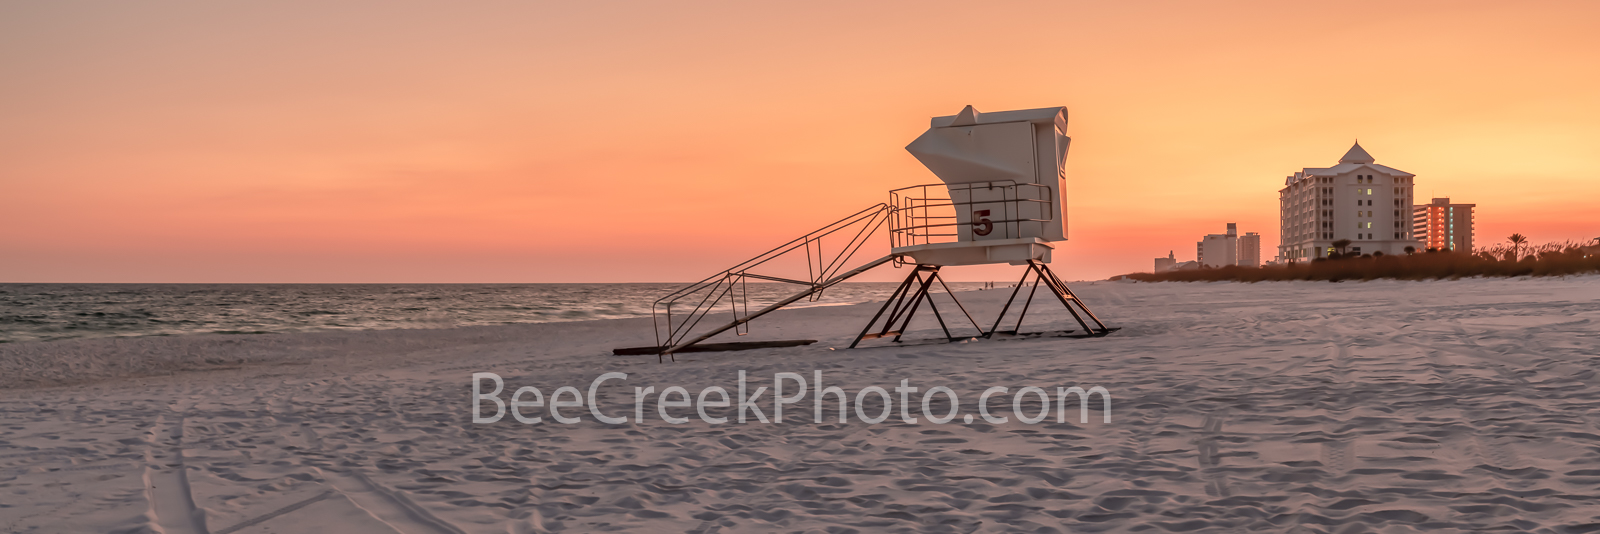 Pensacola Lifeguard Station Sunset Pano - Sunset at Pensacola Beach with Lifeguard Station along shoreline almost a silouette...